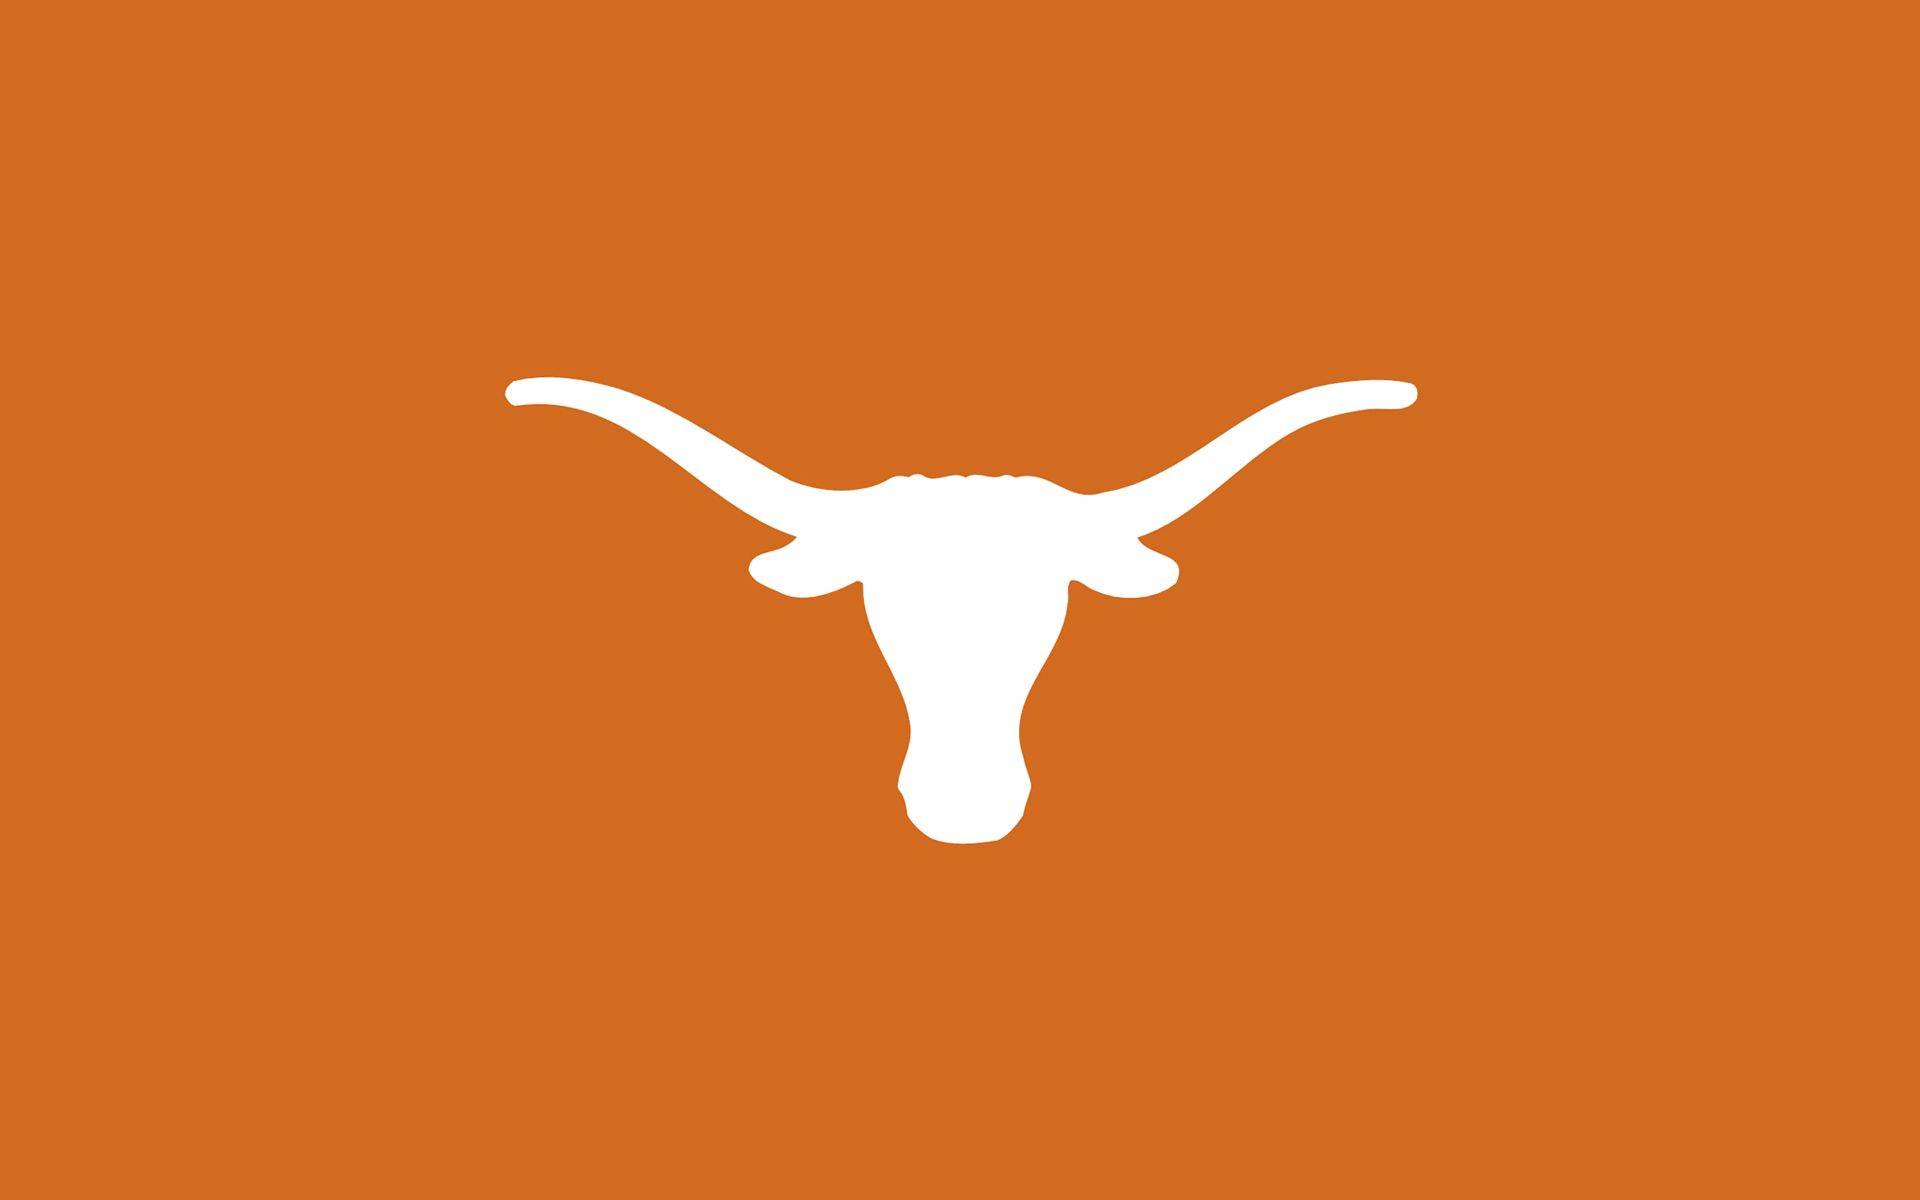 The Ut Austin Longhorn Logo Longhorns Football Texas Longhorns Football Texas Football